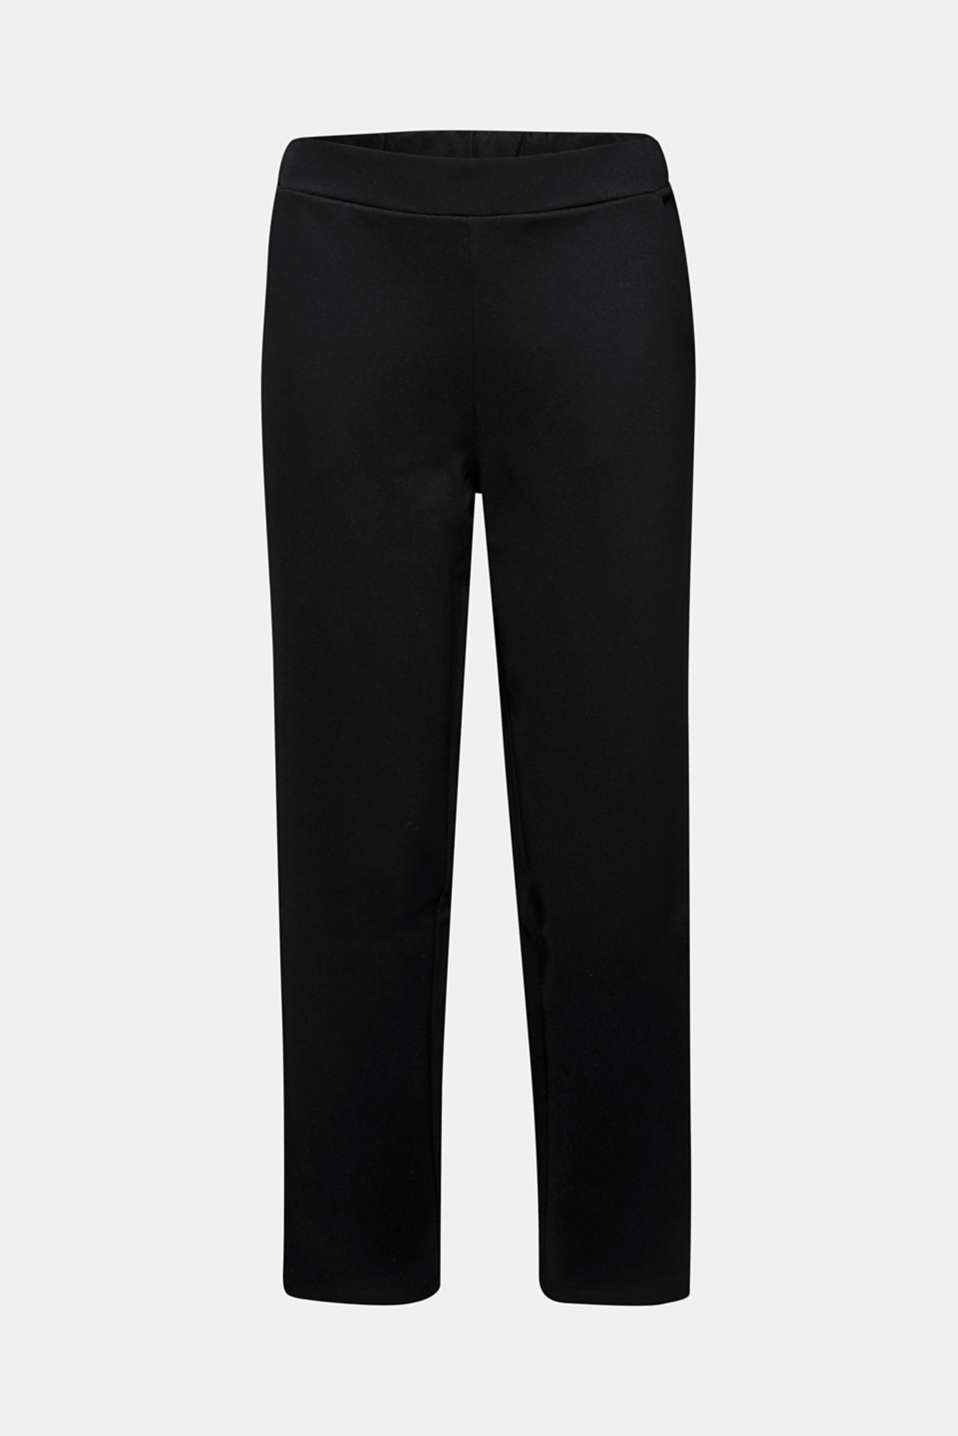 Trousers in compact stretch jersey, BLACK, detail image number 6